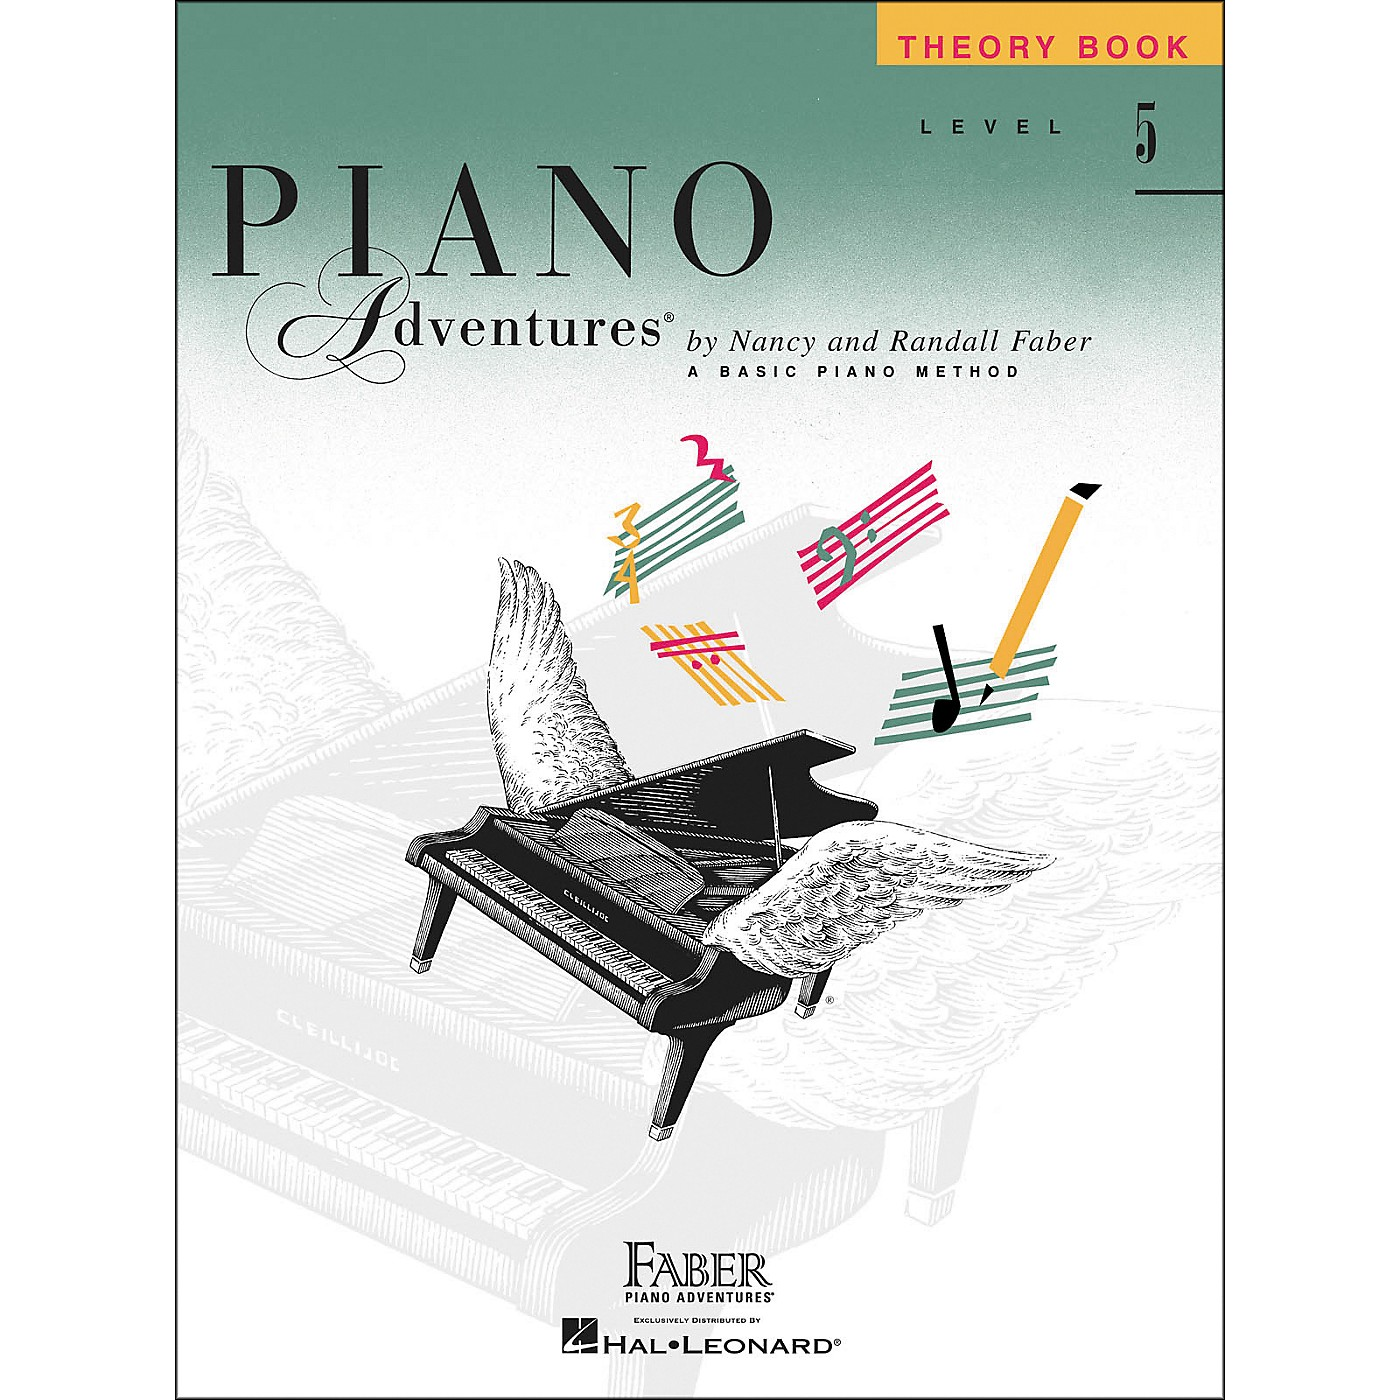 Faber Piano Adventures Piano Adventures Theory Book Level 5 - Faber Piano thumbnail